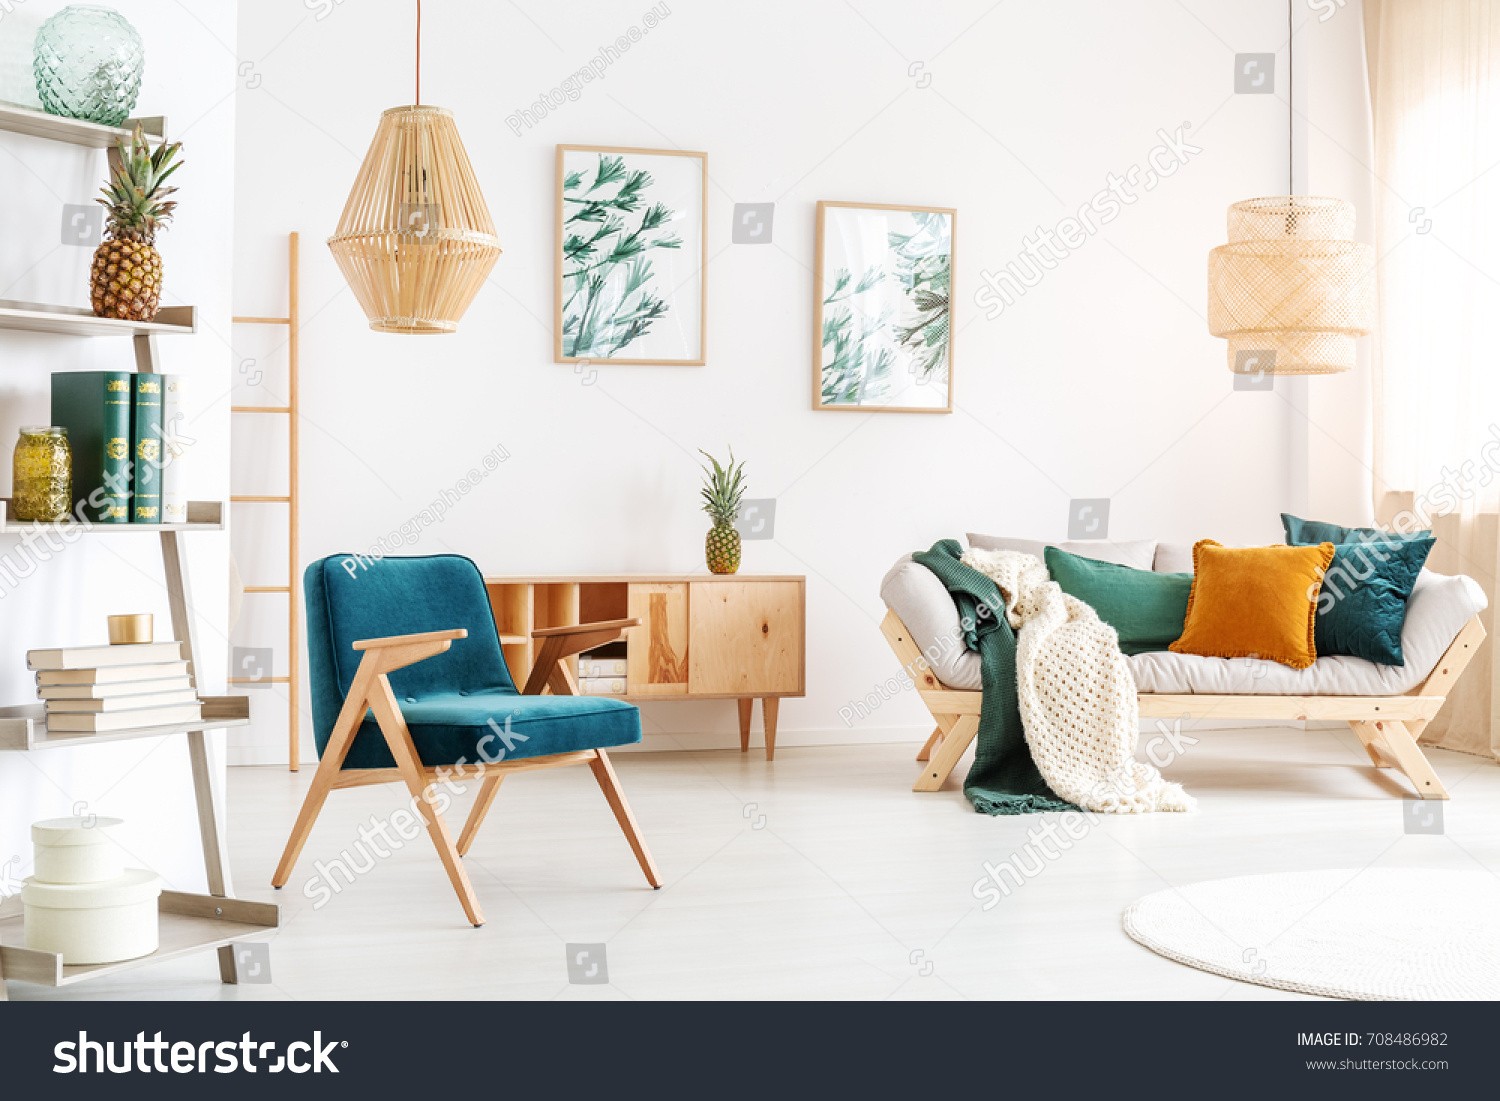 Handmade Lamp Above Blue Vintage Chair Stock Photo (Royalty Free ...